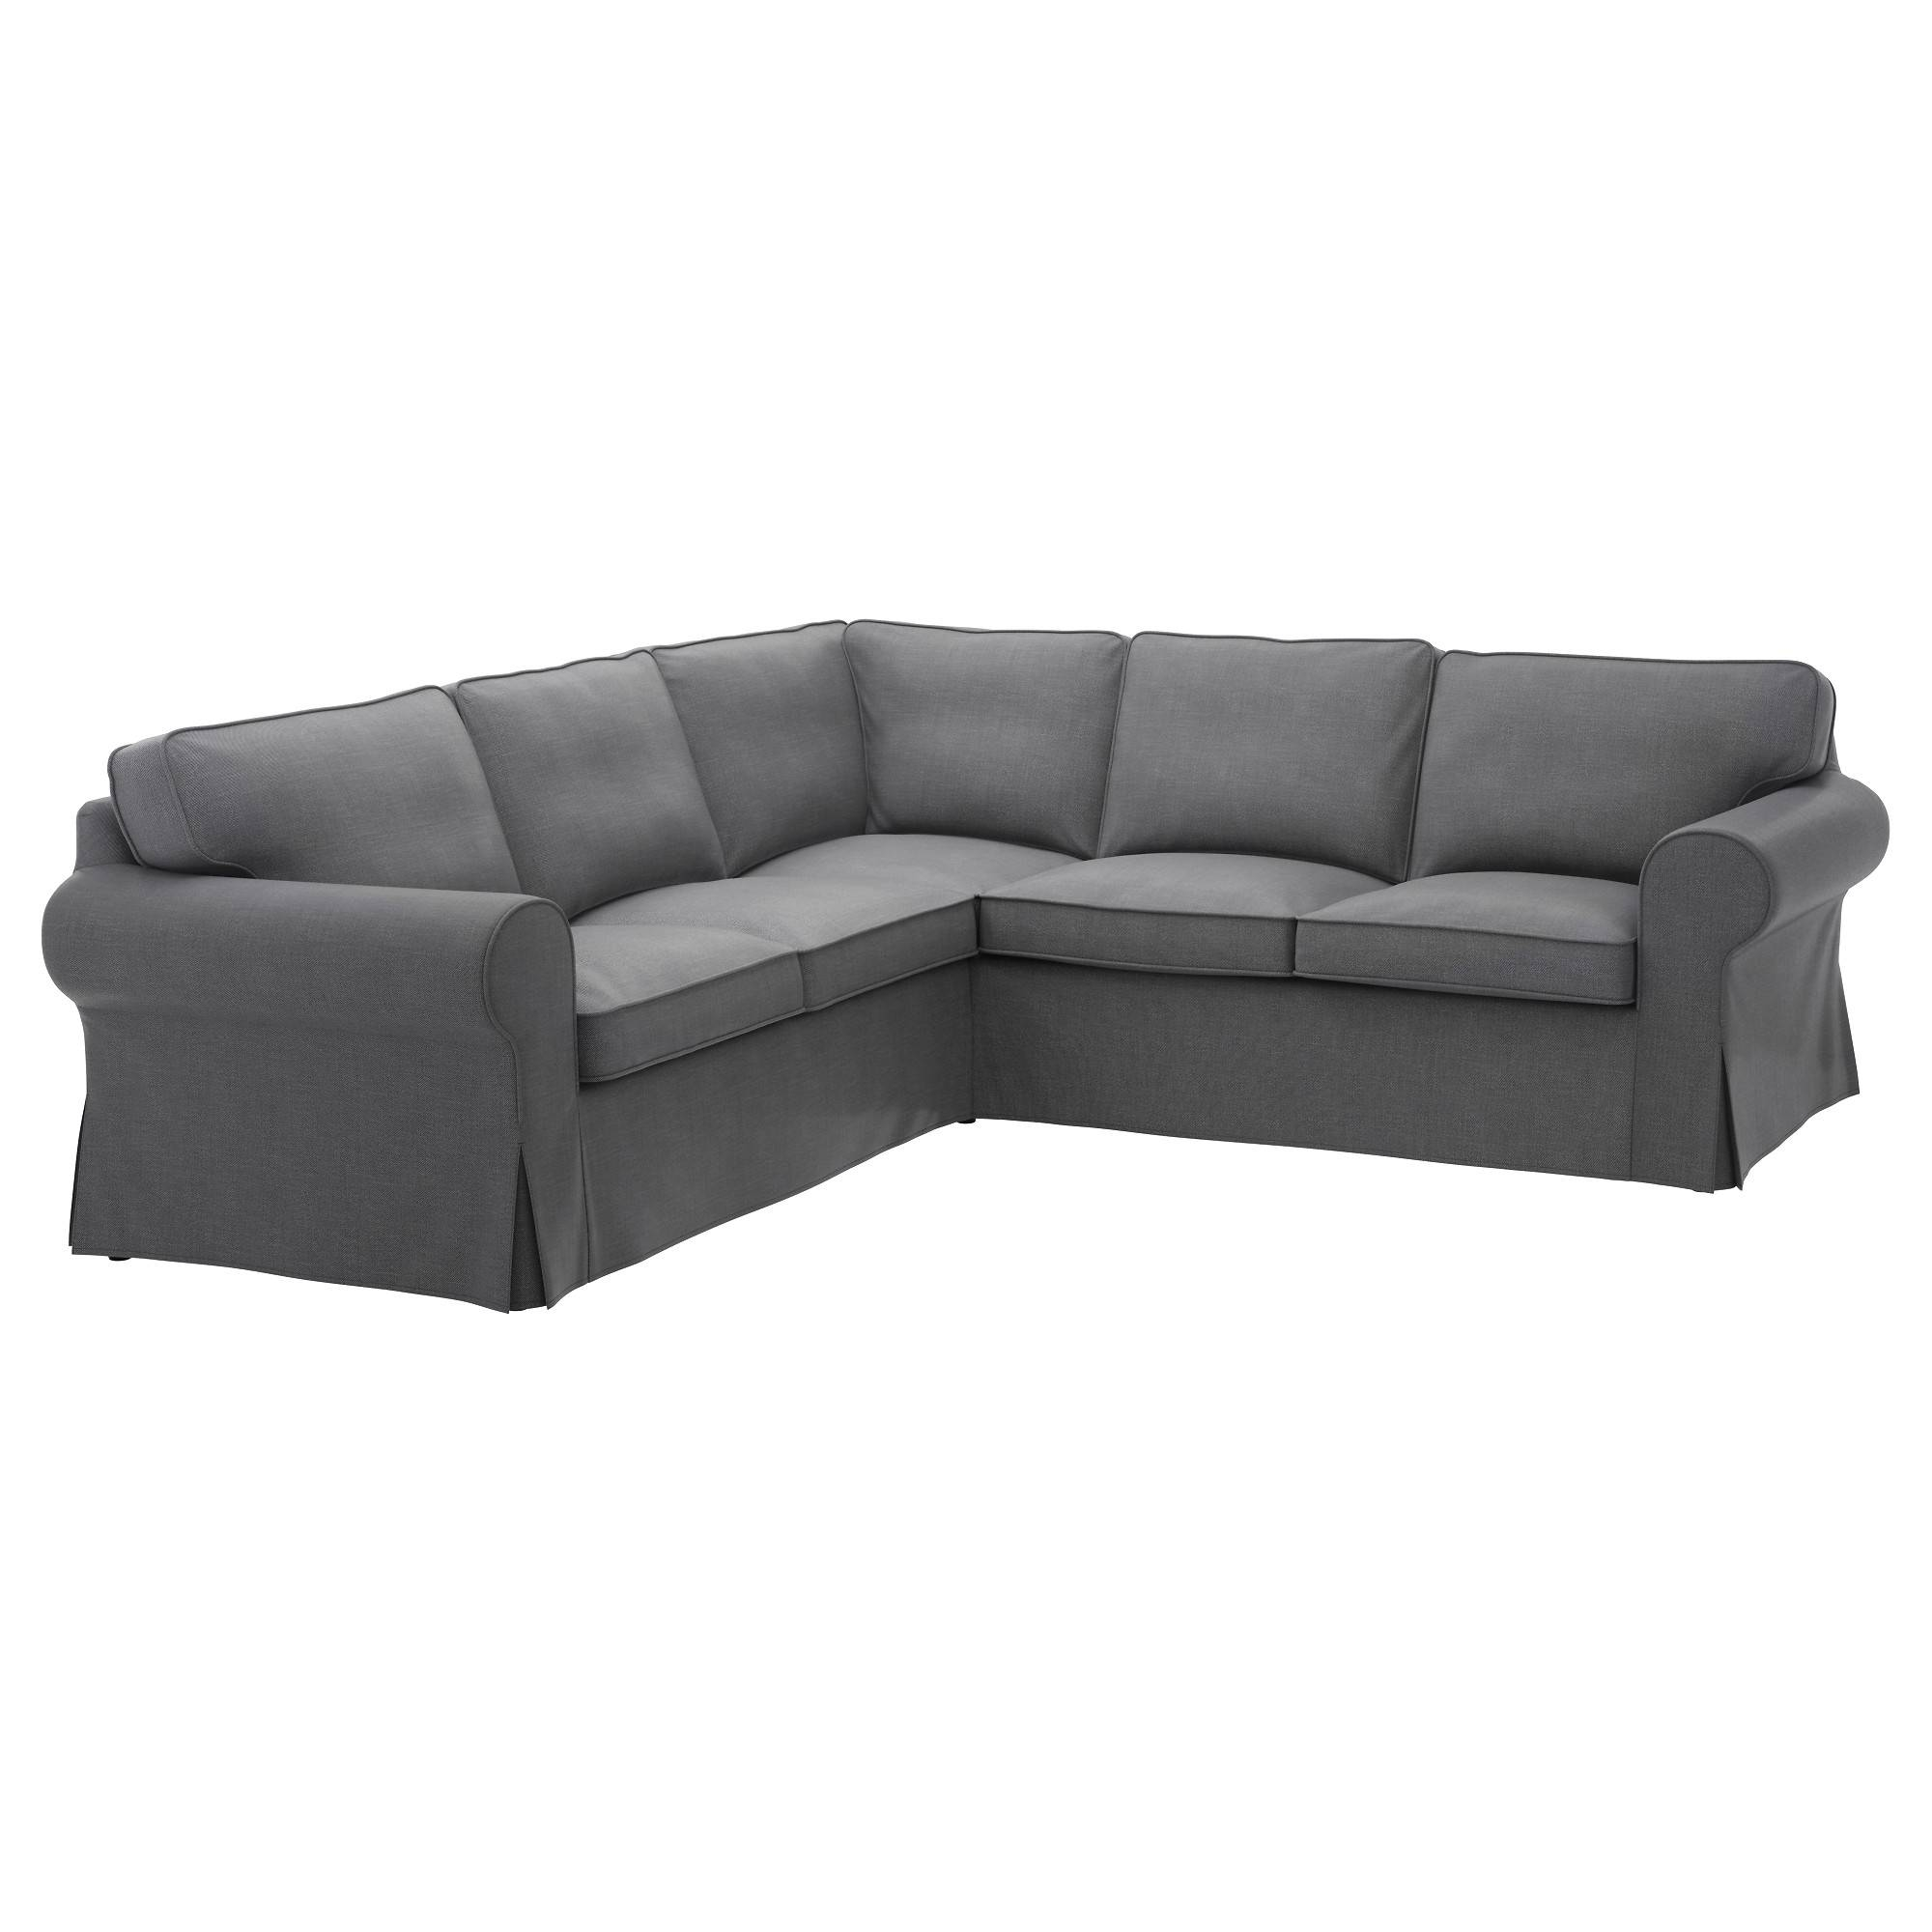 Fabric Sofas - Modern & Contemporary - Ikea pertaining to Cream Colored Sofa (Image 11 of 25)